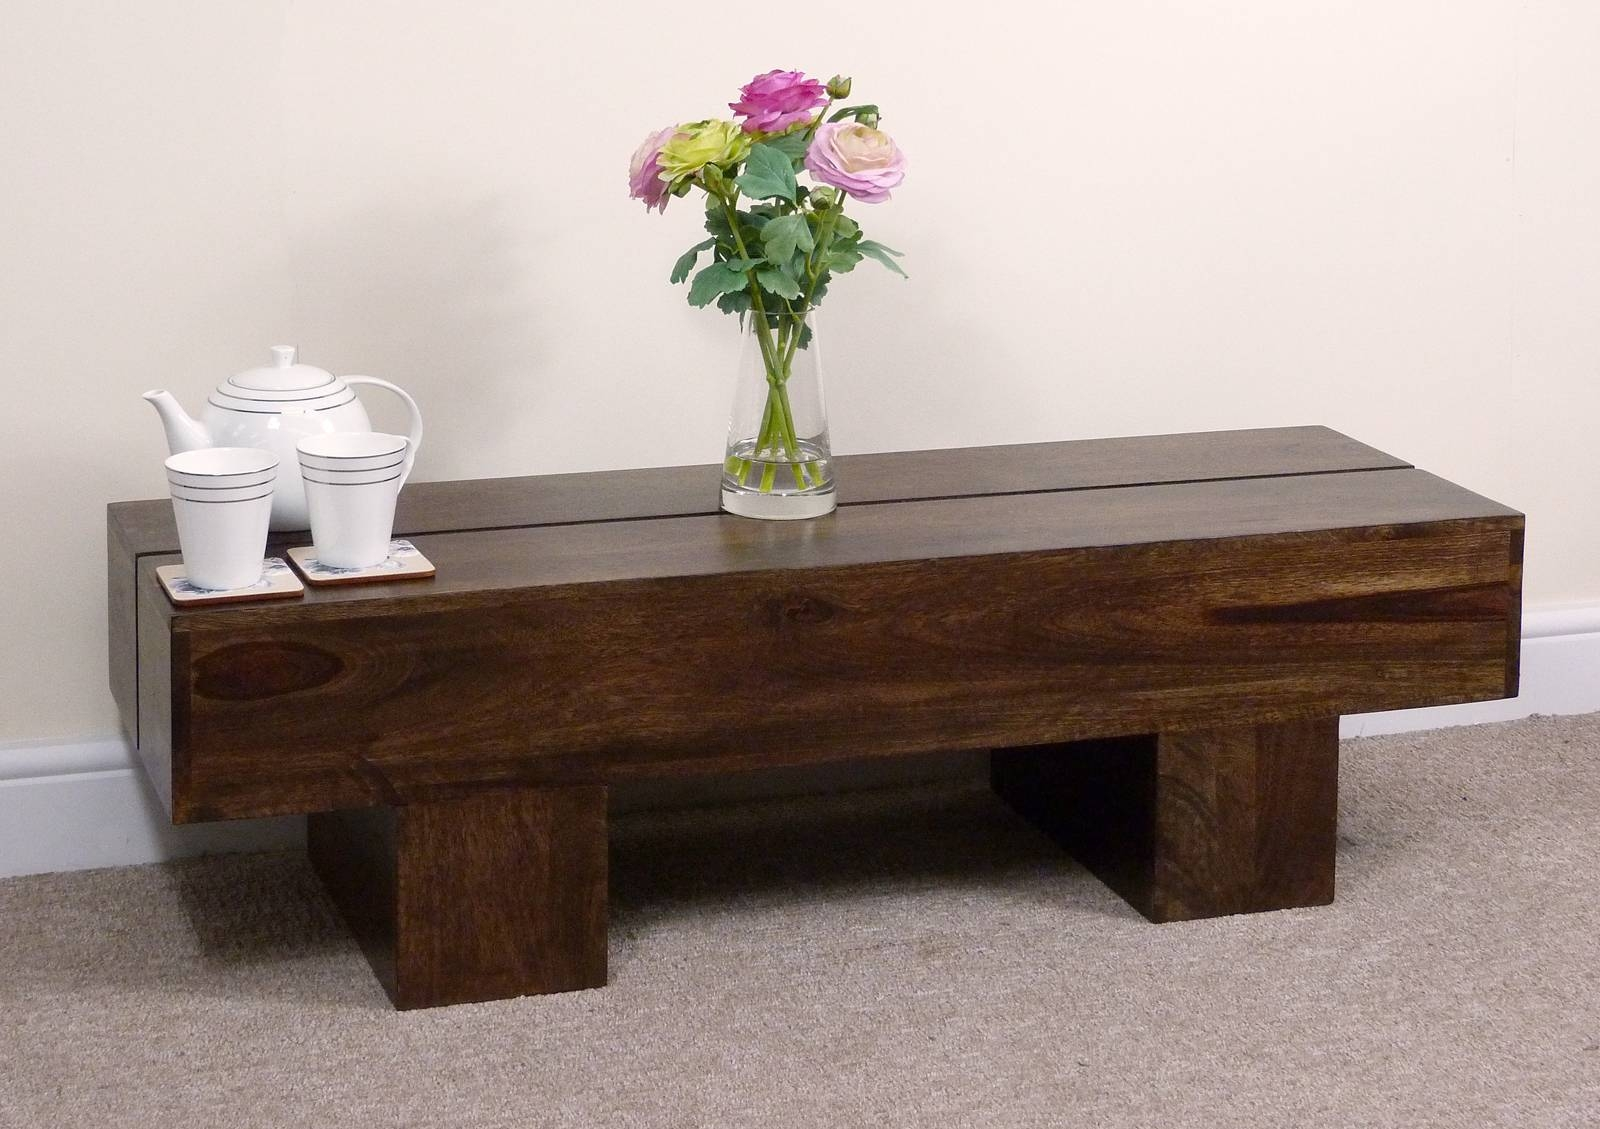 Coffee Tables Rustic Wood – Gallery Image Fppudocs Inside Chunky Rustic Coffee Tables (View 10 of 30)